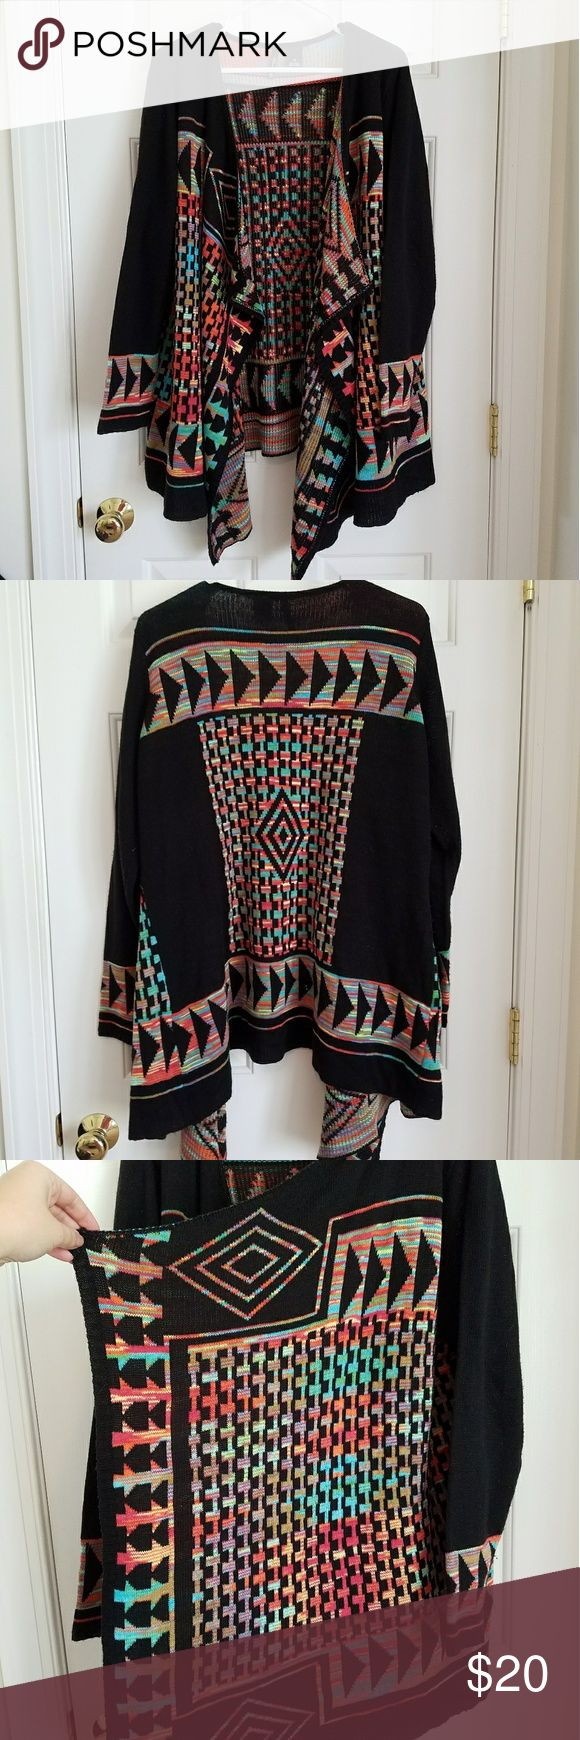 Vibrant Aztec Cardigan sz 1X Vibrant Aztec print cardigan by New Directions in size 1X, fits 16/18/20. Good used condition, light pilling at armpits. From a smoke free, cat friendly home. new directions Sweaters Cardigans